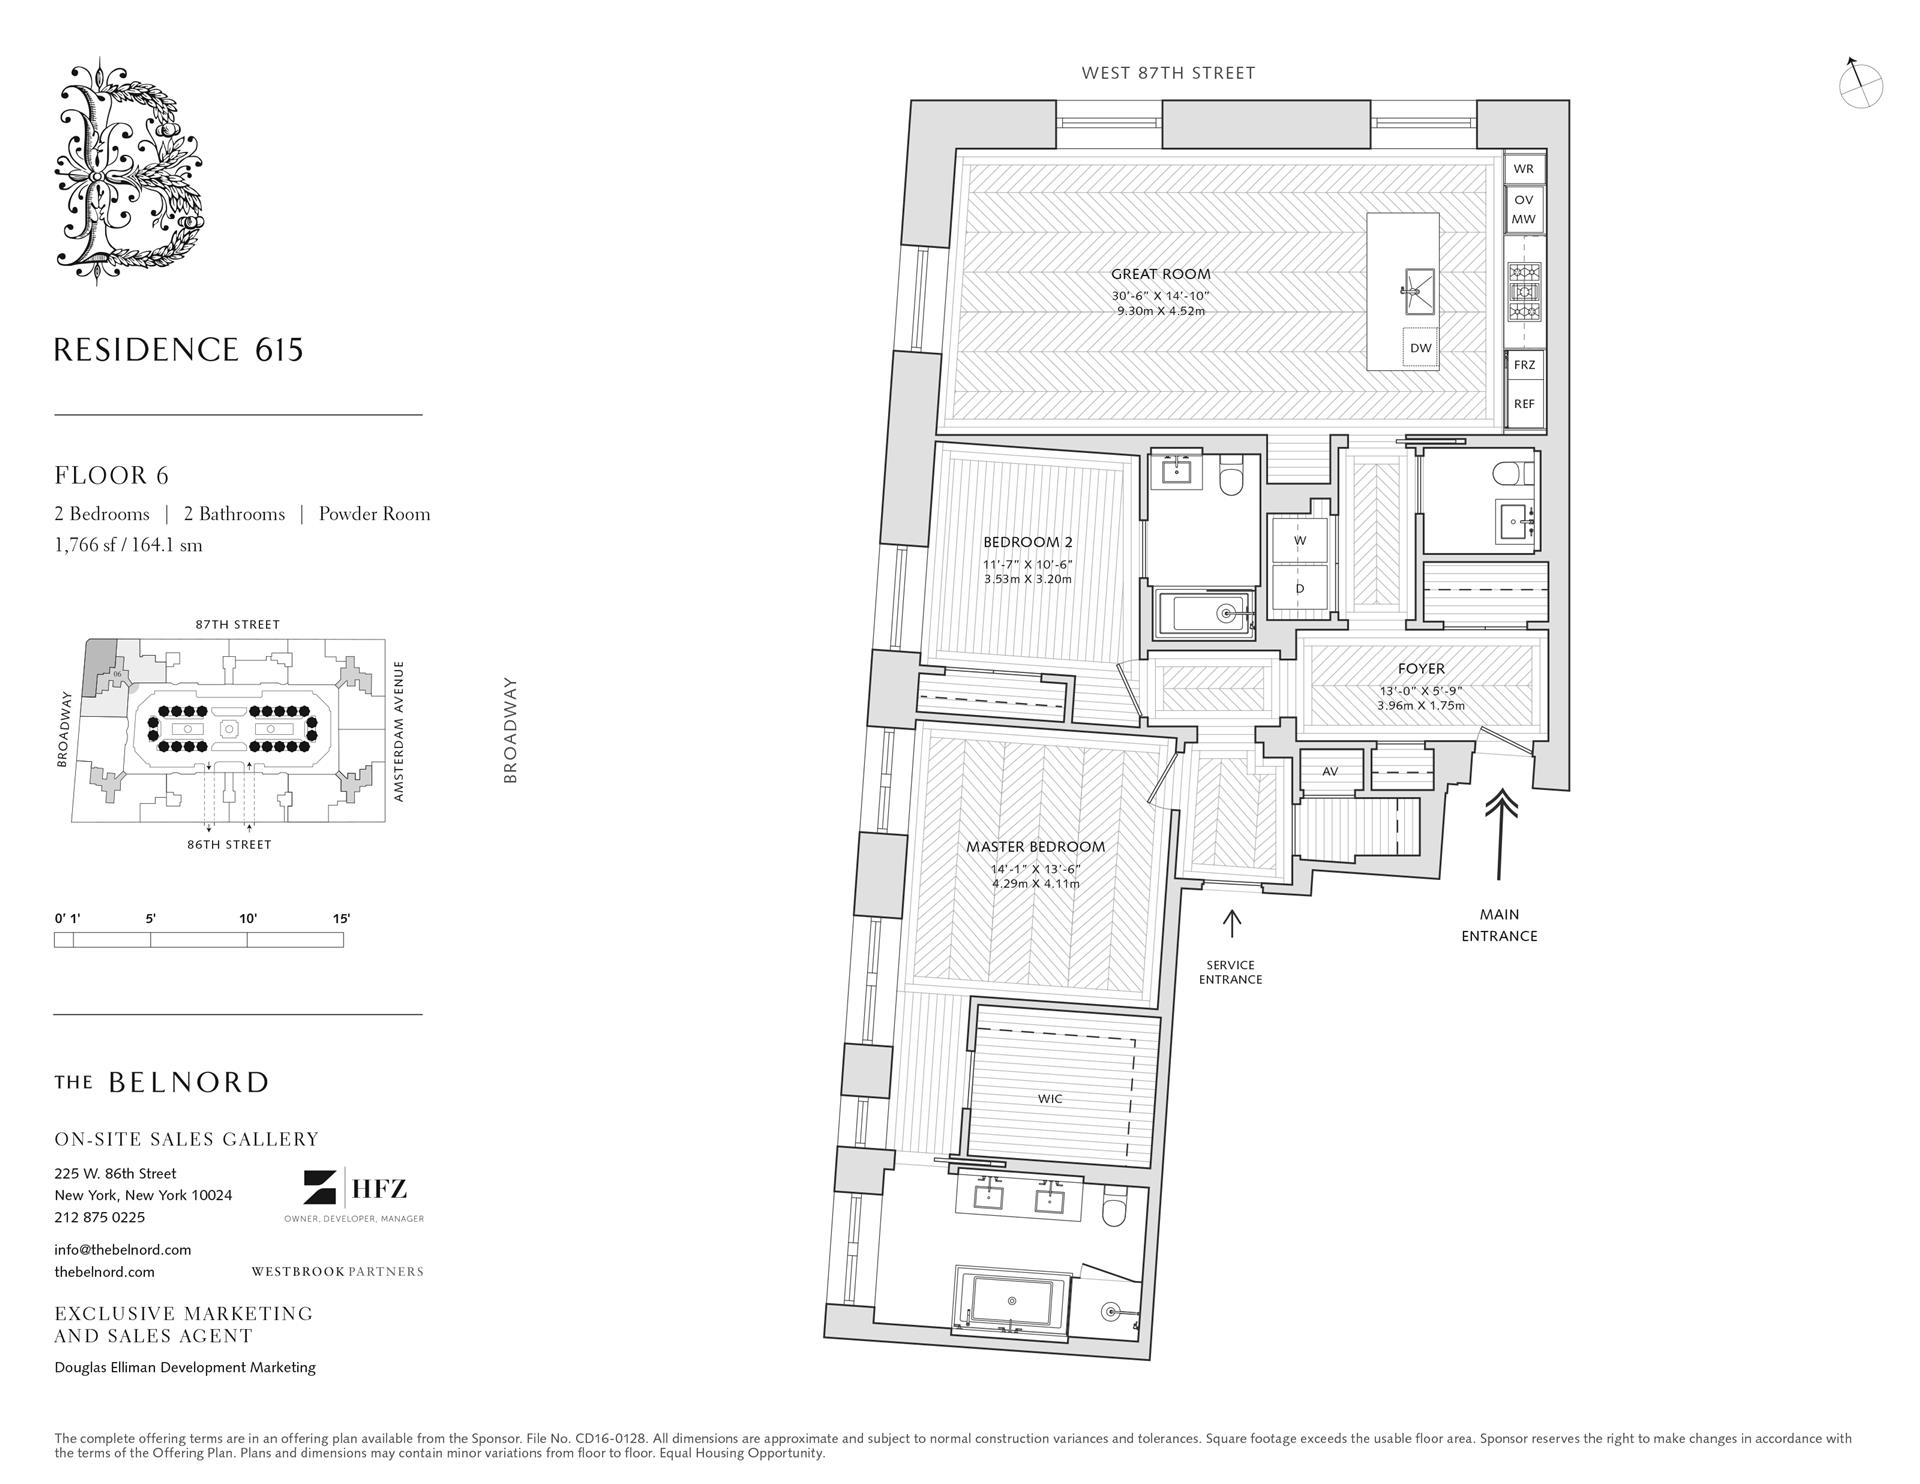 Floor plan of The Belnord, 225 West 86th St, 615 - Upper West Side, New York